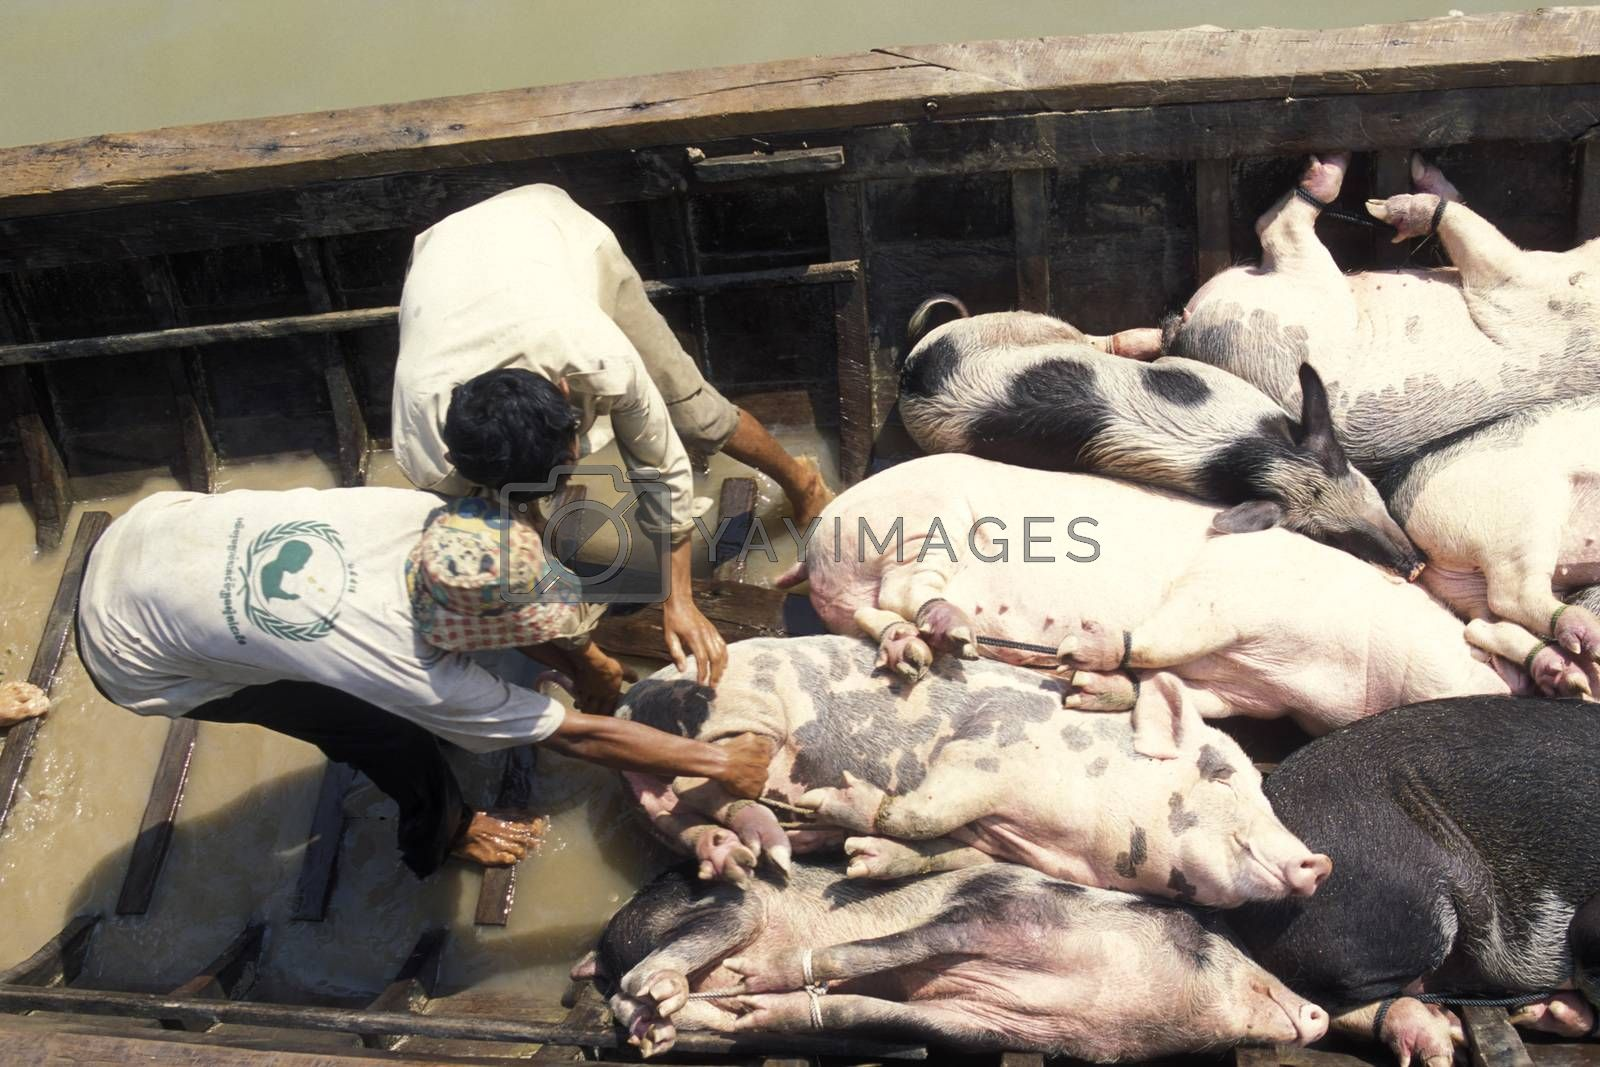 a transport of pigs at a Boat on the Lake tonle sap near the town of siem riep  in the east of Cambodia.  Cambodia, Sihanoukville, February, 2001,